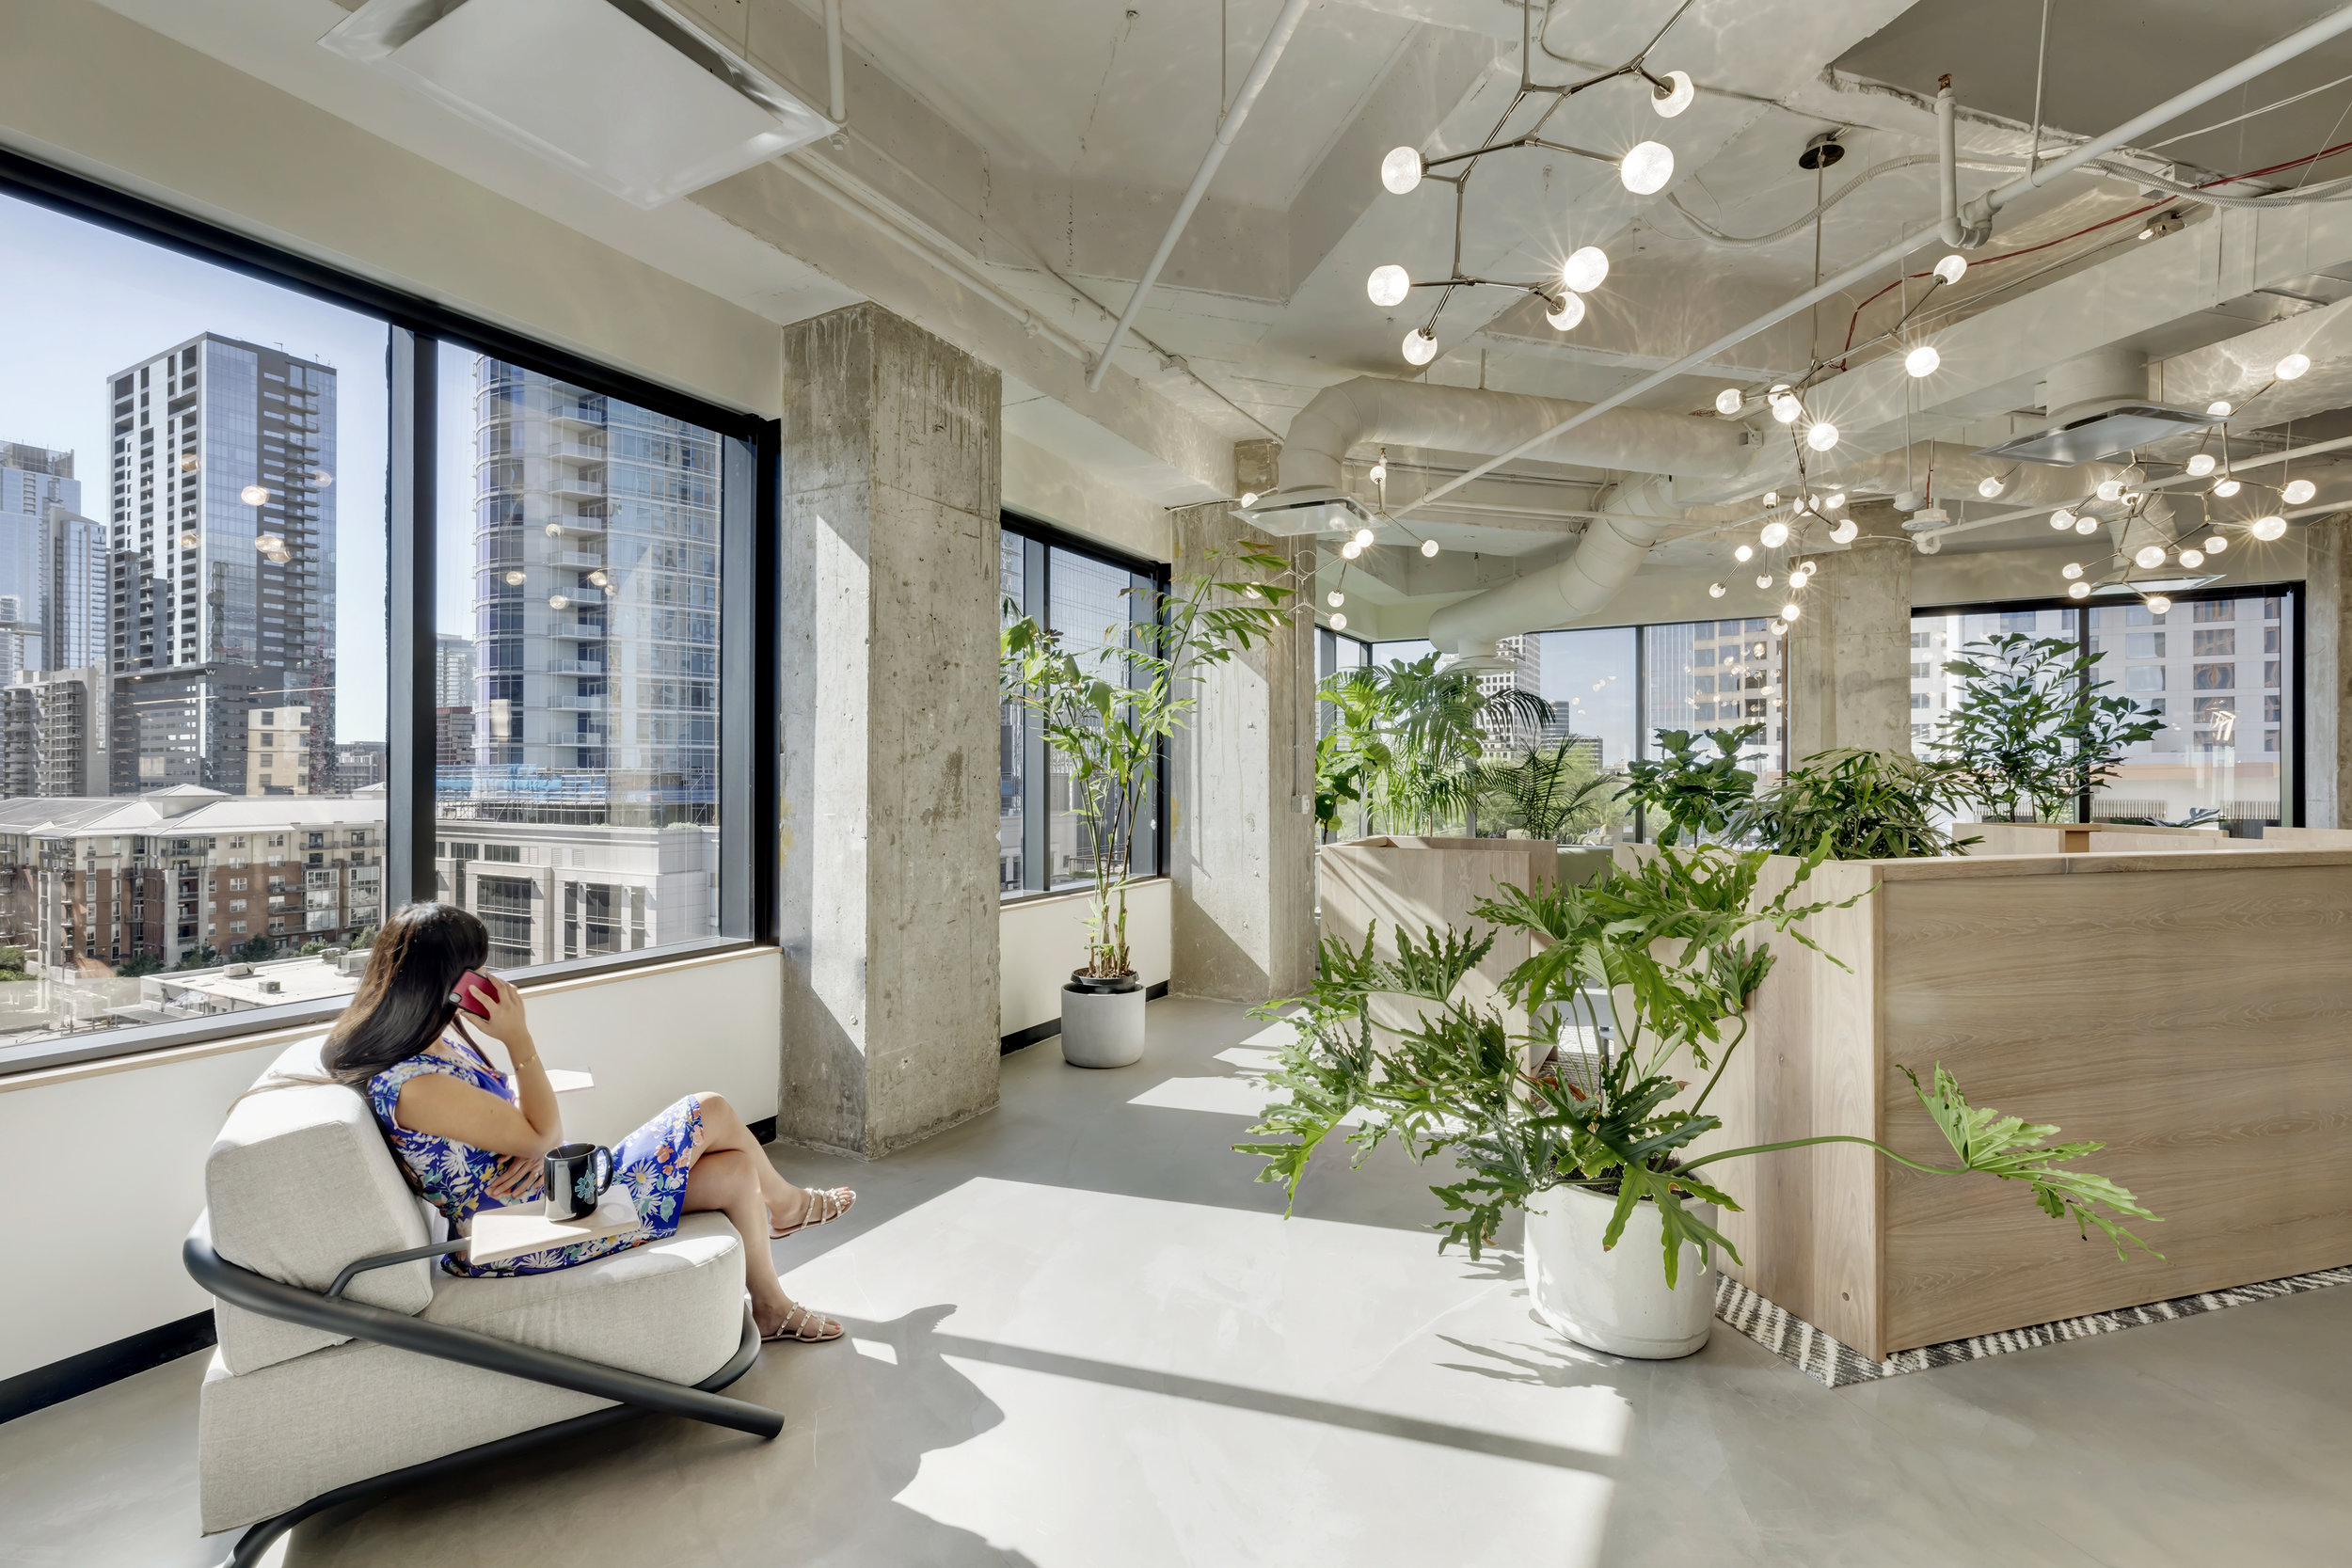 29 RigUp Office by Matt Fajkus Architecture. Photo by Charles Davis Smith.jpg